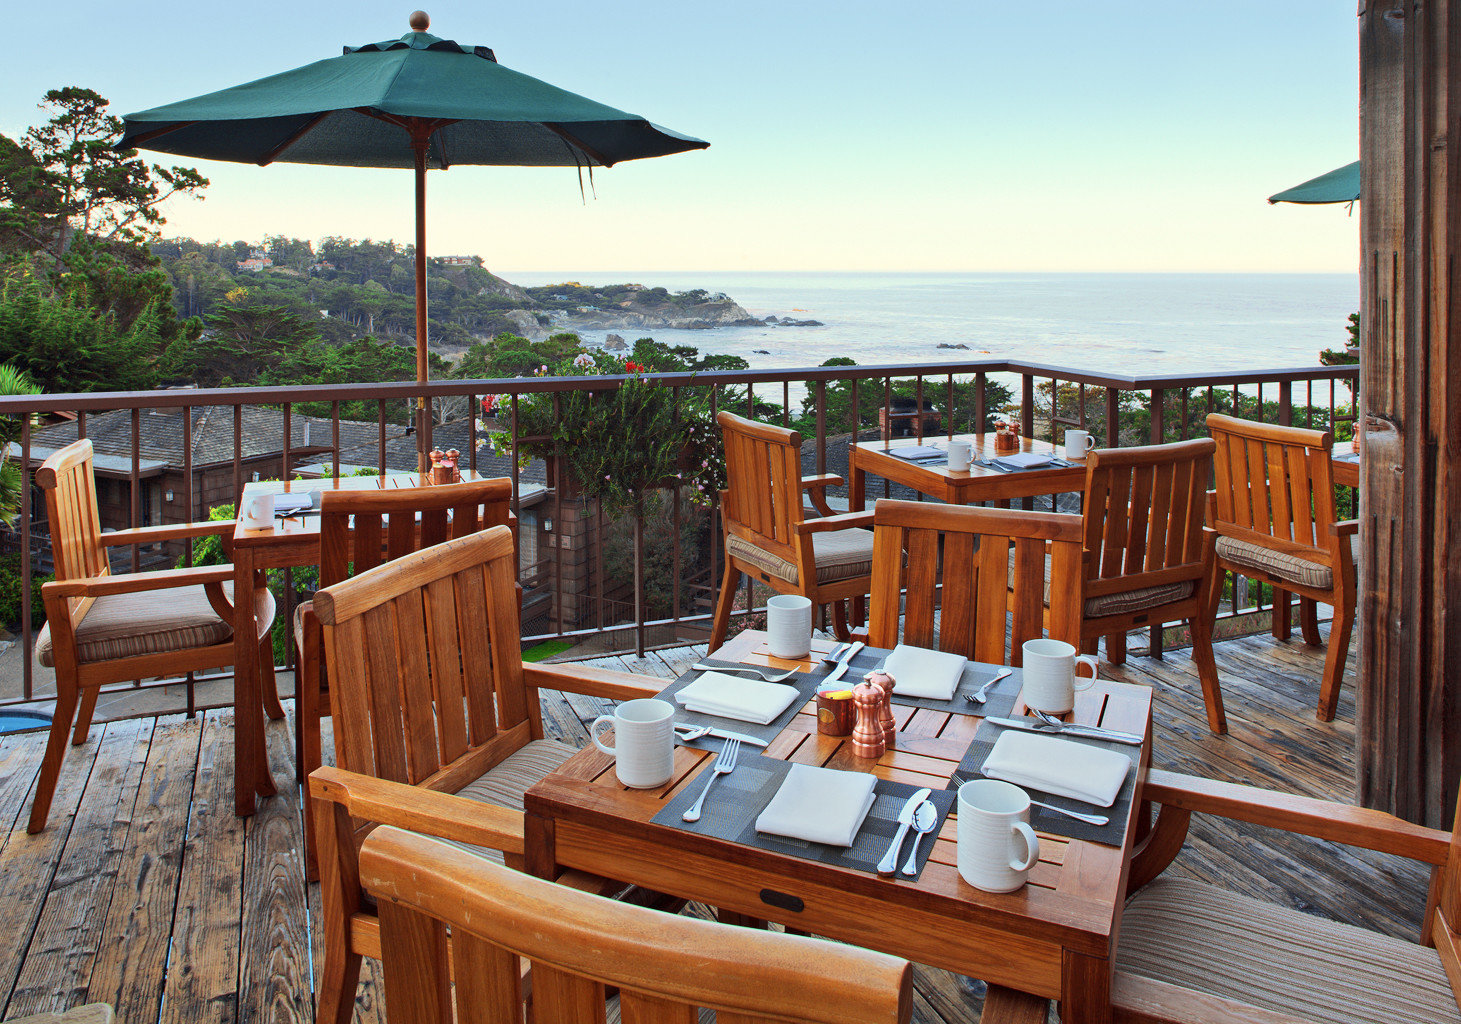 Balcony Deck Dining Drink Eat Ocean Patio Scenic views chair sky umbrella property wooden Resort restaurant lawn cottage vehicle Villa set